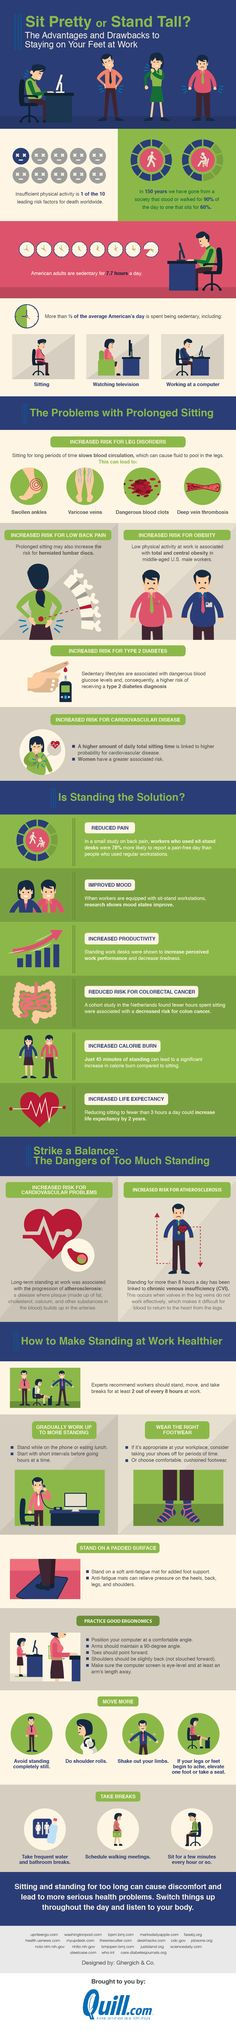 Infographic: The Advantages And Drawbacks Of Staying On Your Feet At Work - DesignTAXI.com